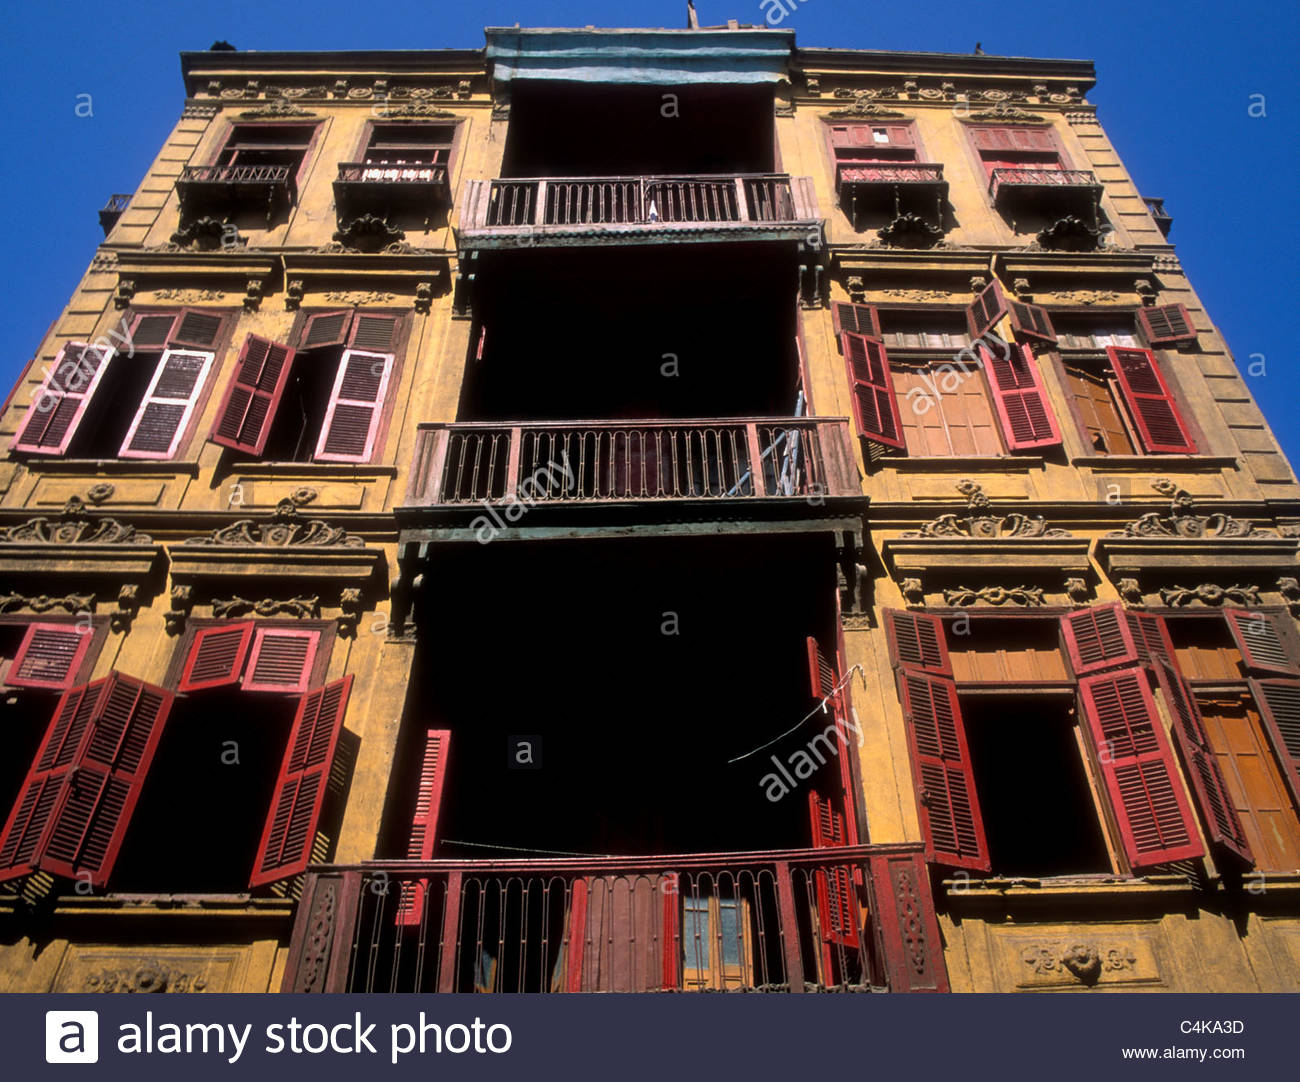 Ottoman residential architecture in Cairo Egypt - Stock Image